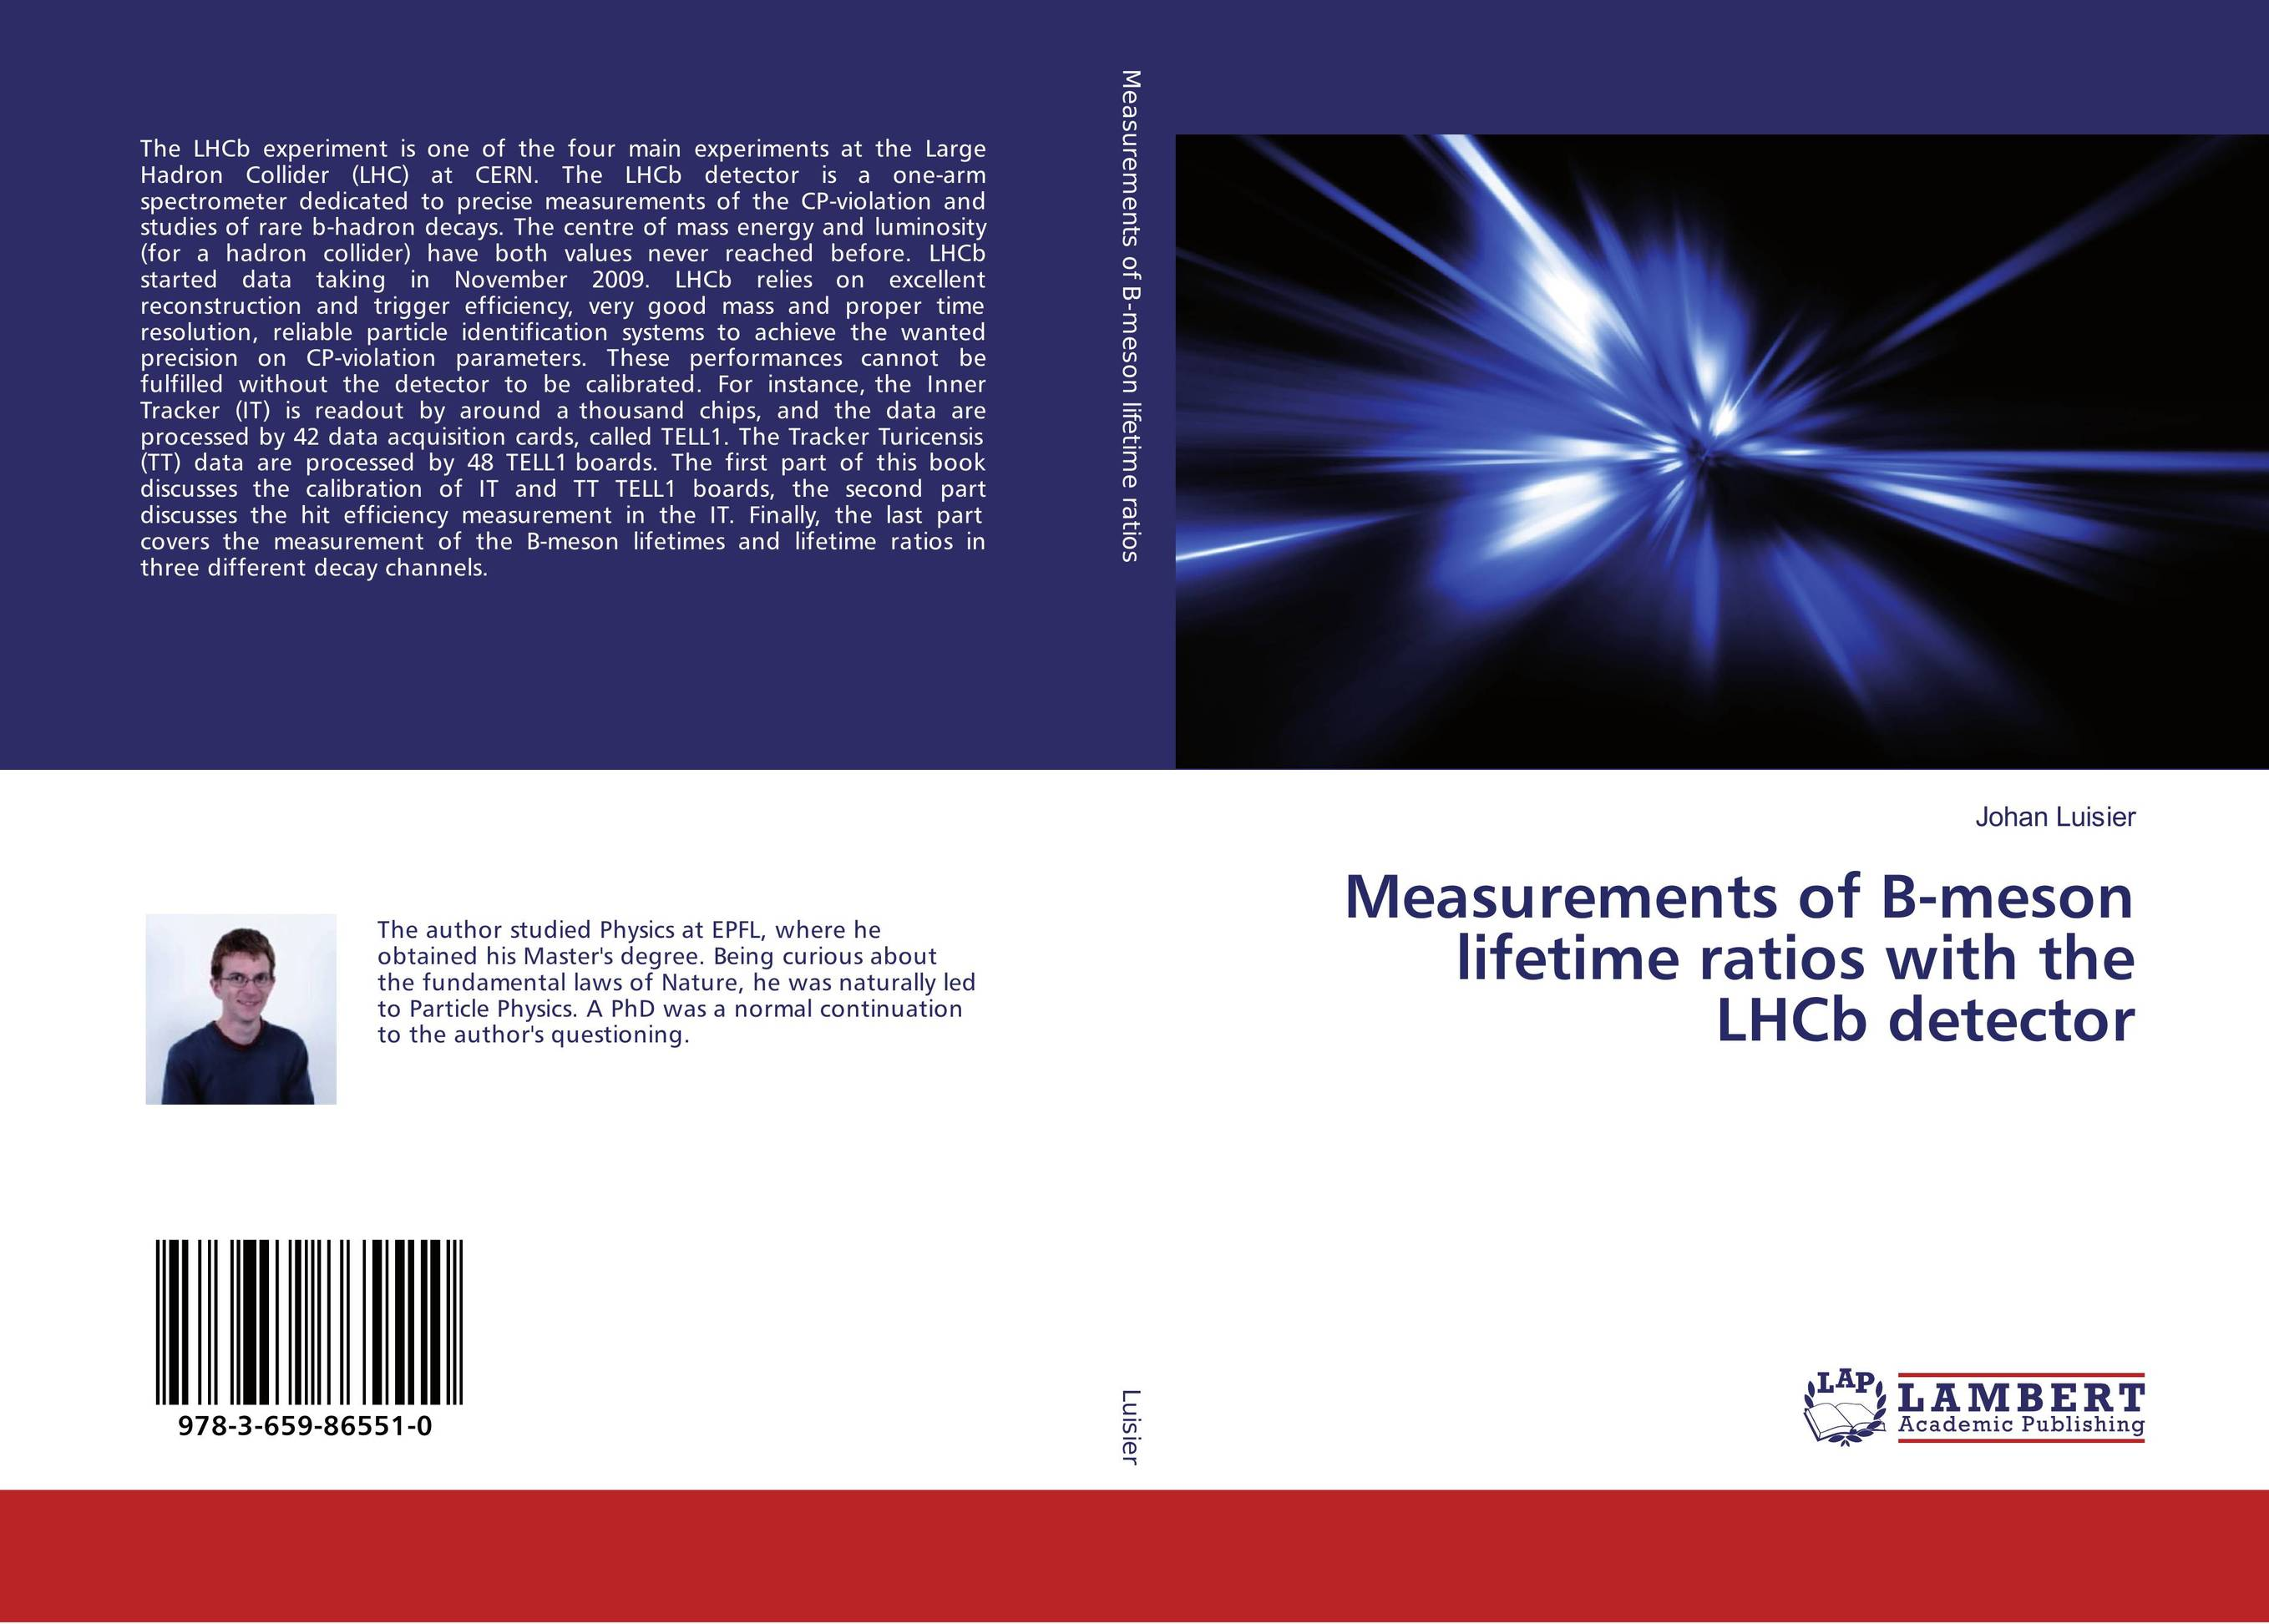 Measurements of B-meson lifetime ratios with the LHCb detector